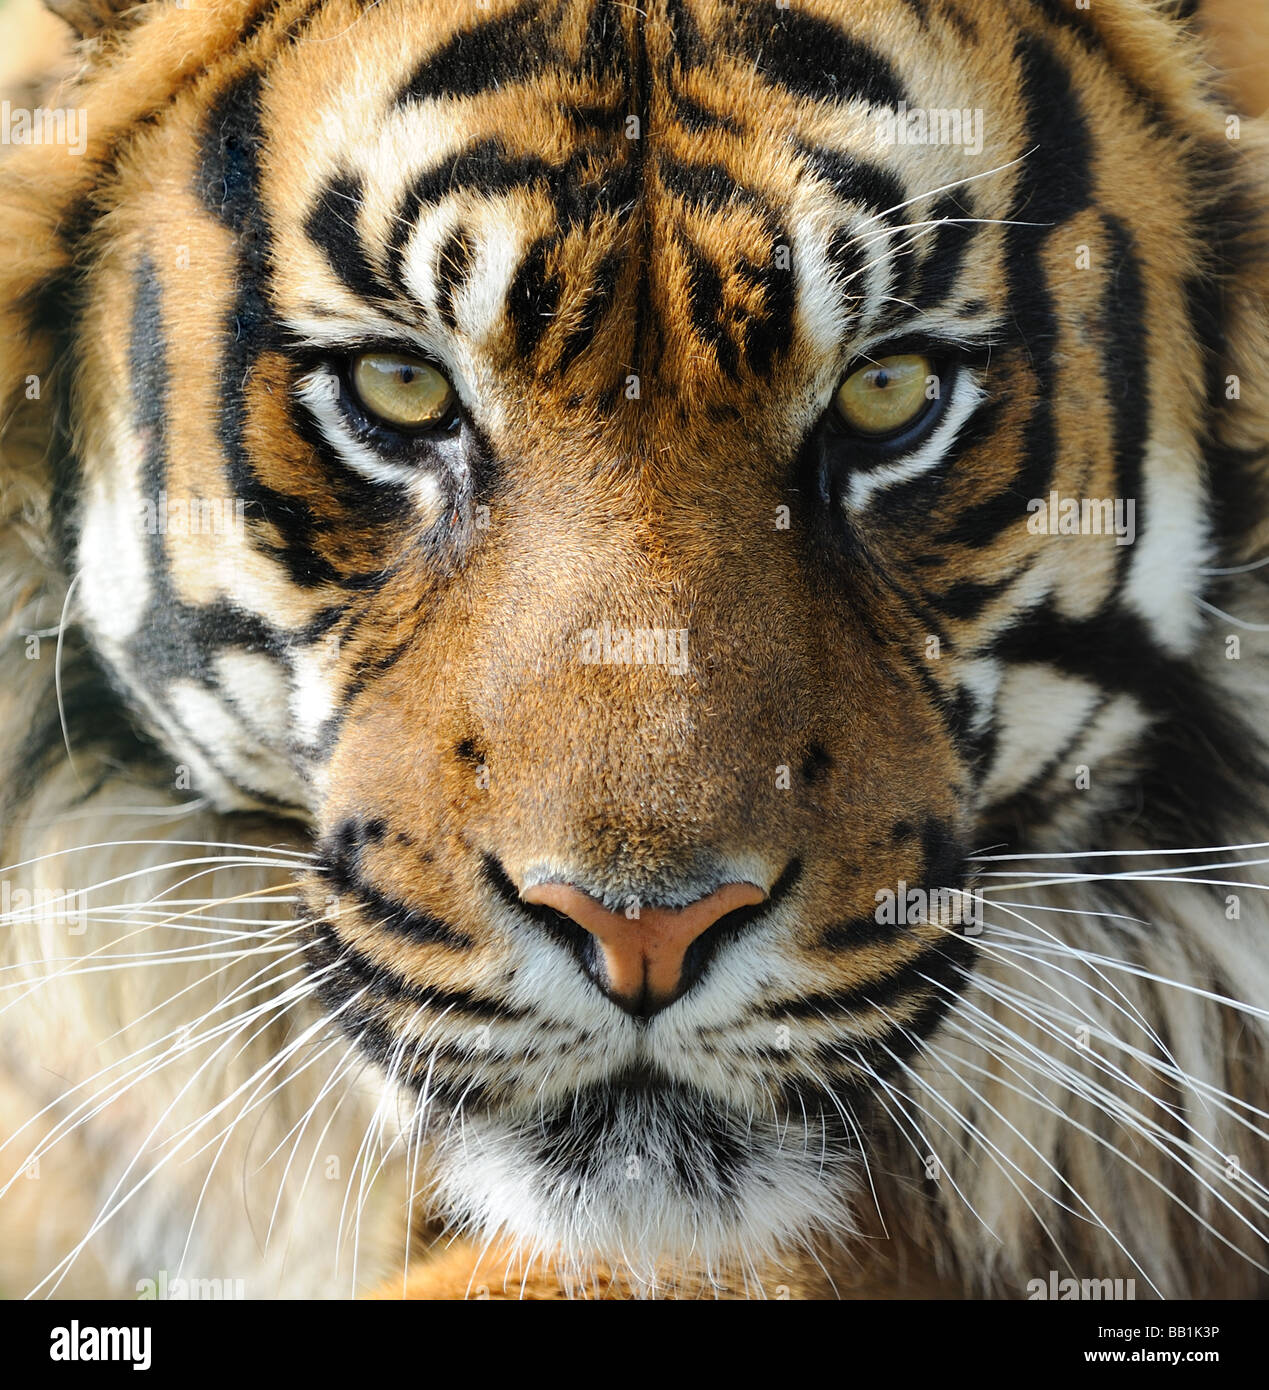 Tiger: Tiger Face Stock Photos & Tiger Face Stock Images